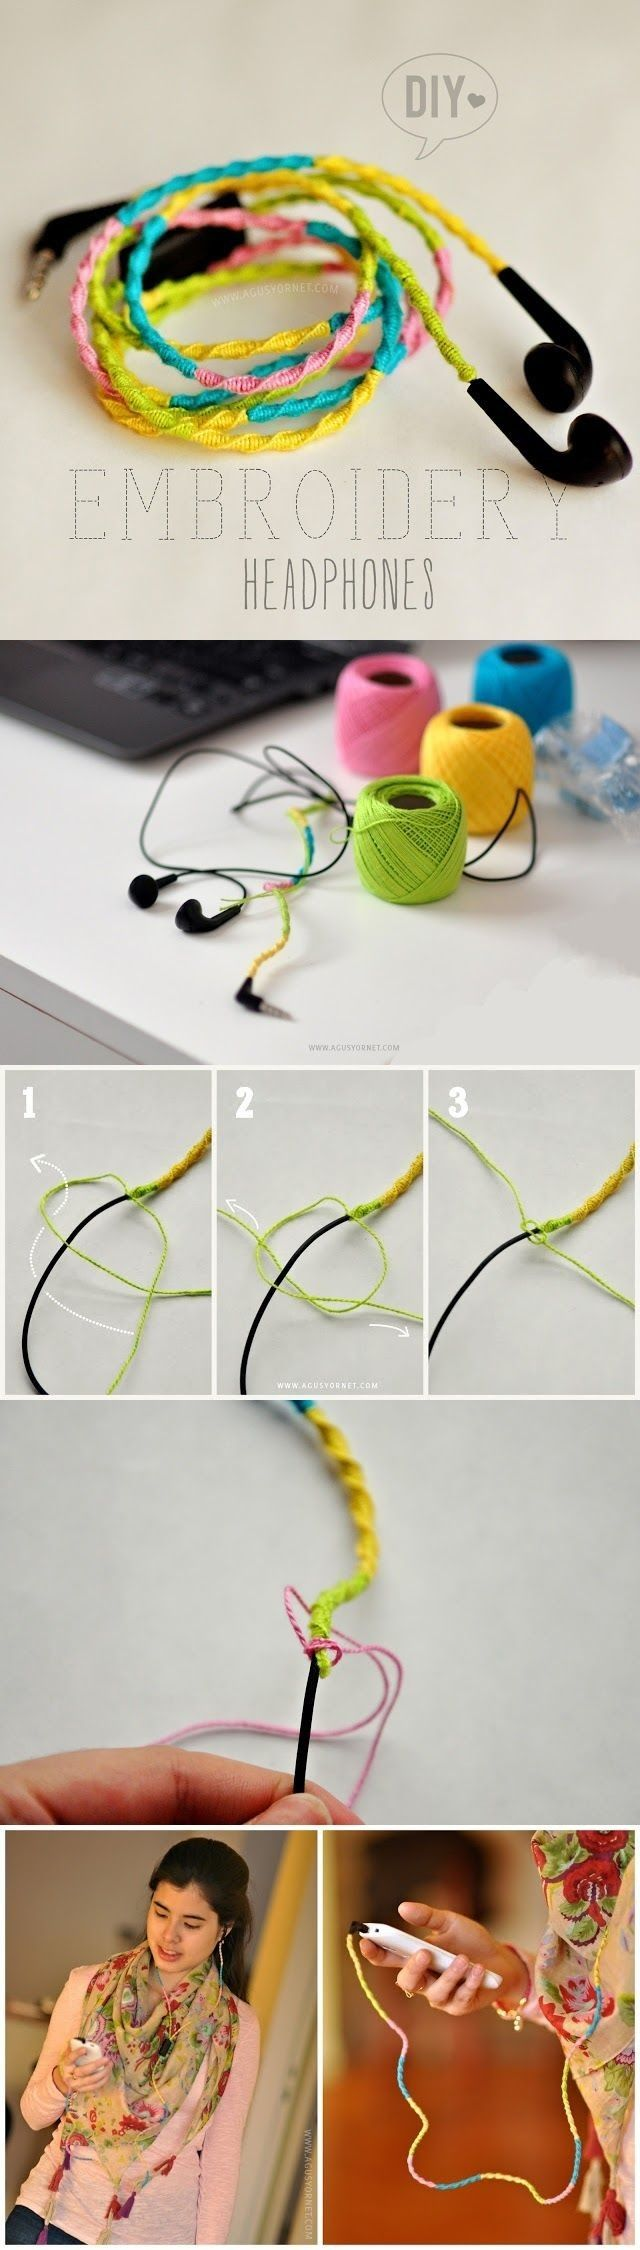 Diy Projects: DIY Embroidery Headphones